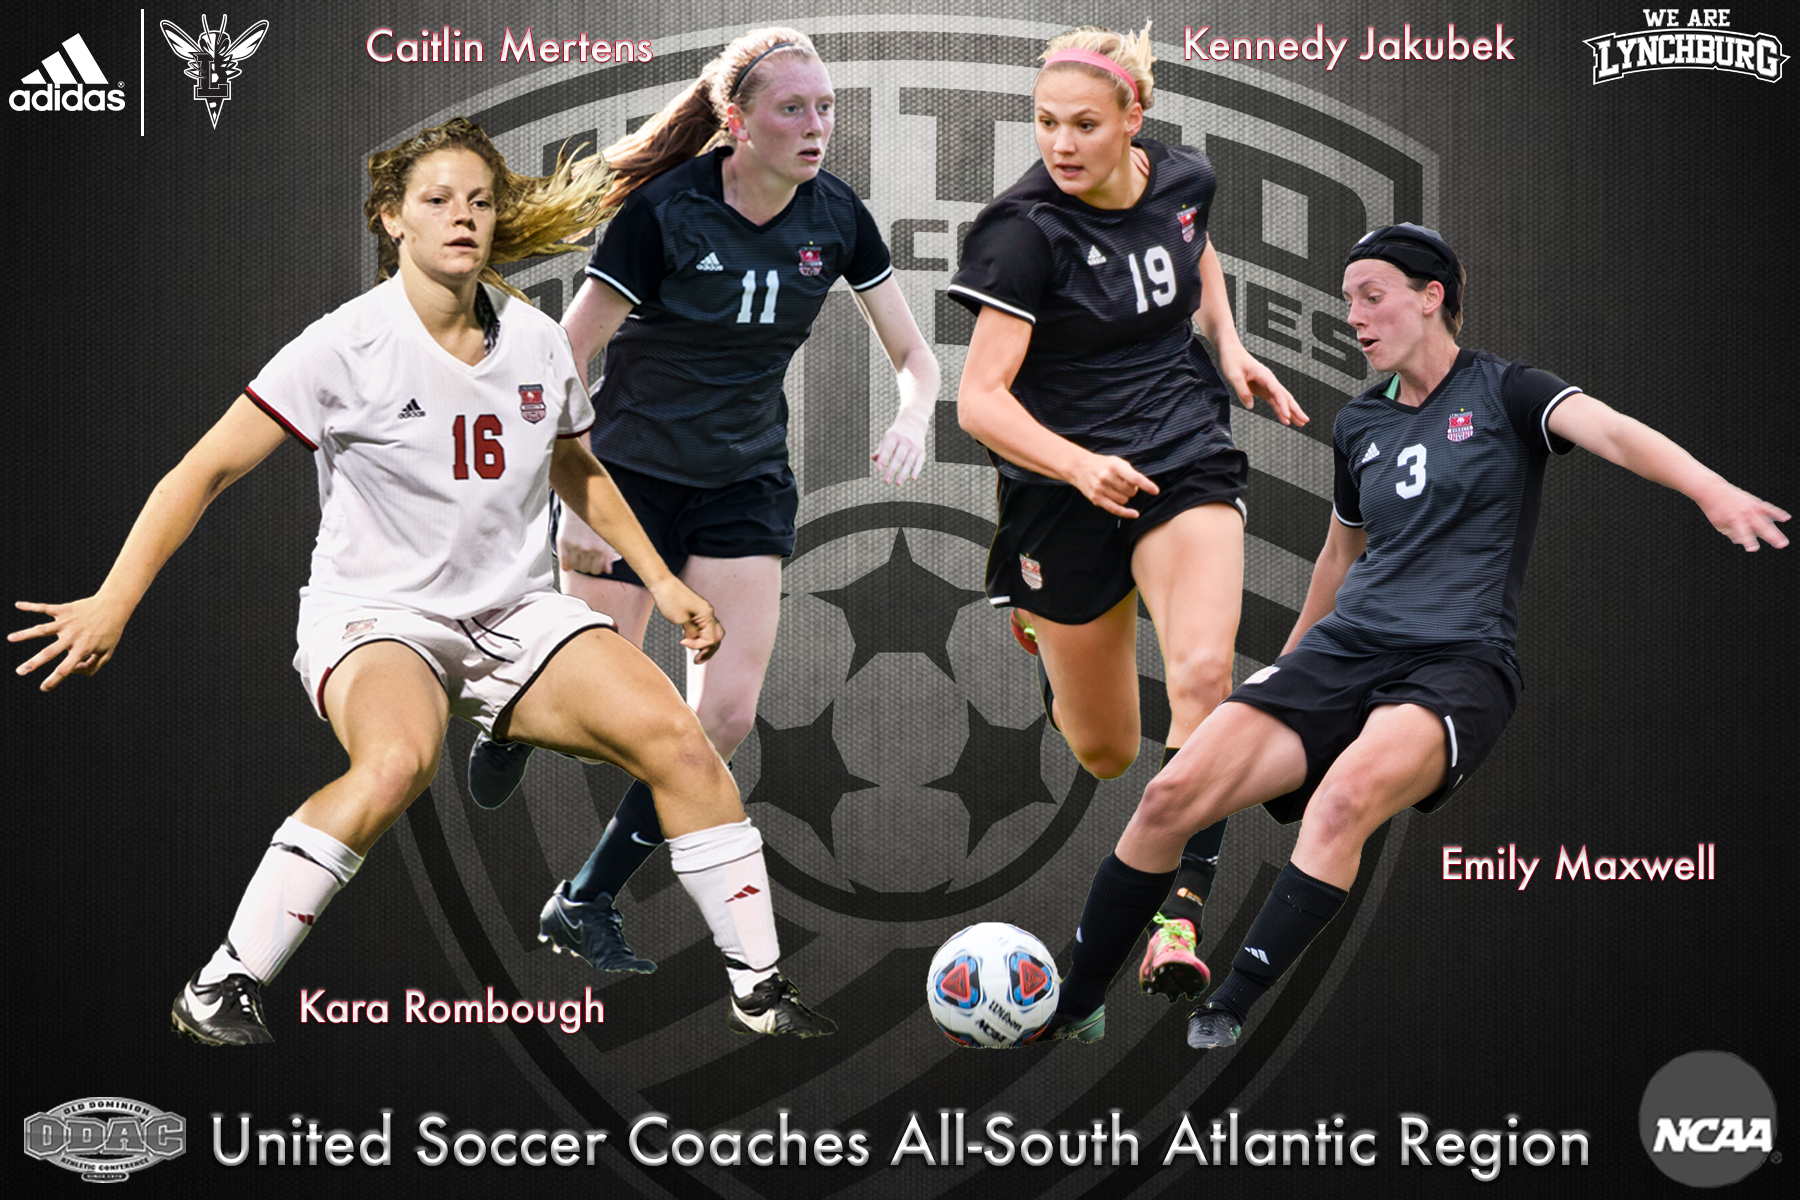 Graphic showing Lynchburg's all-region selections: Kara Rombough, Caitlin Mertens, Kennedy Jakubek, and Emily Maxwell.